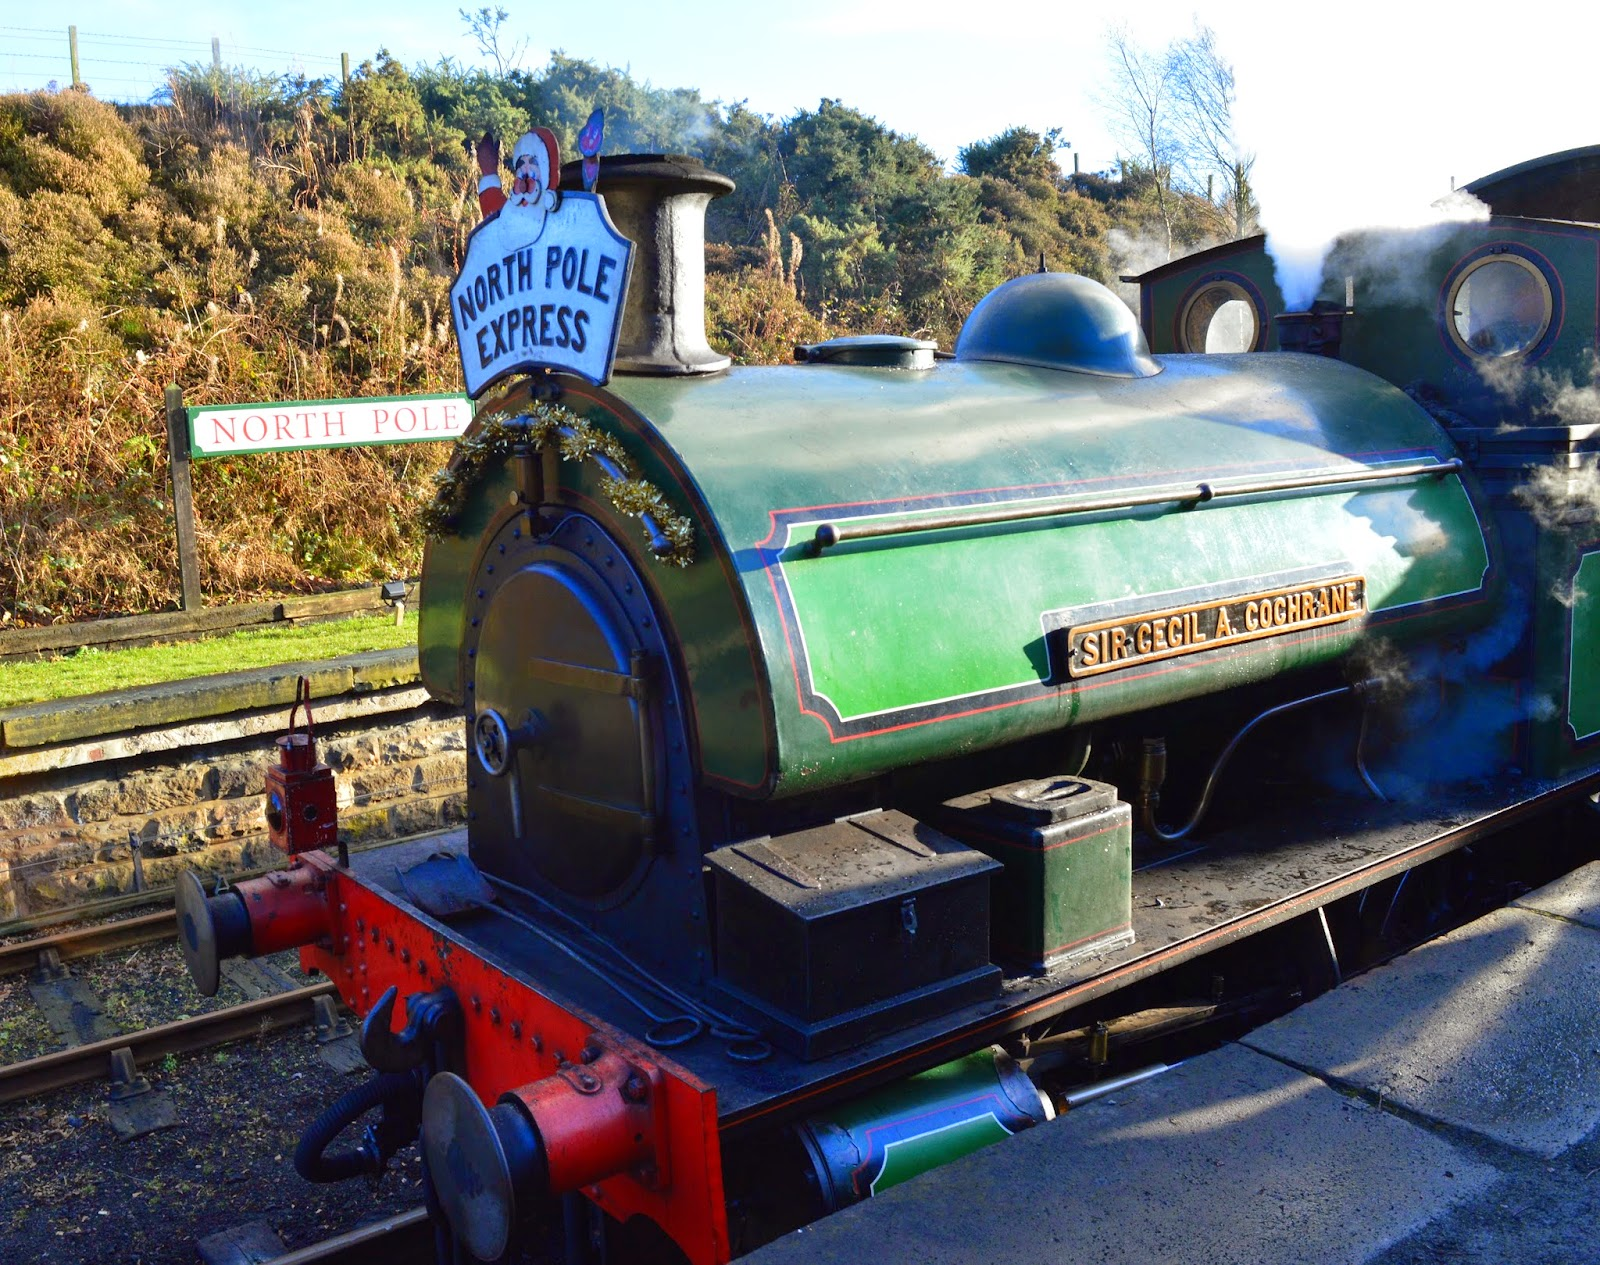 The Original North Pole Express | Tanfield Railway - A North East 'Santa Train' review